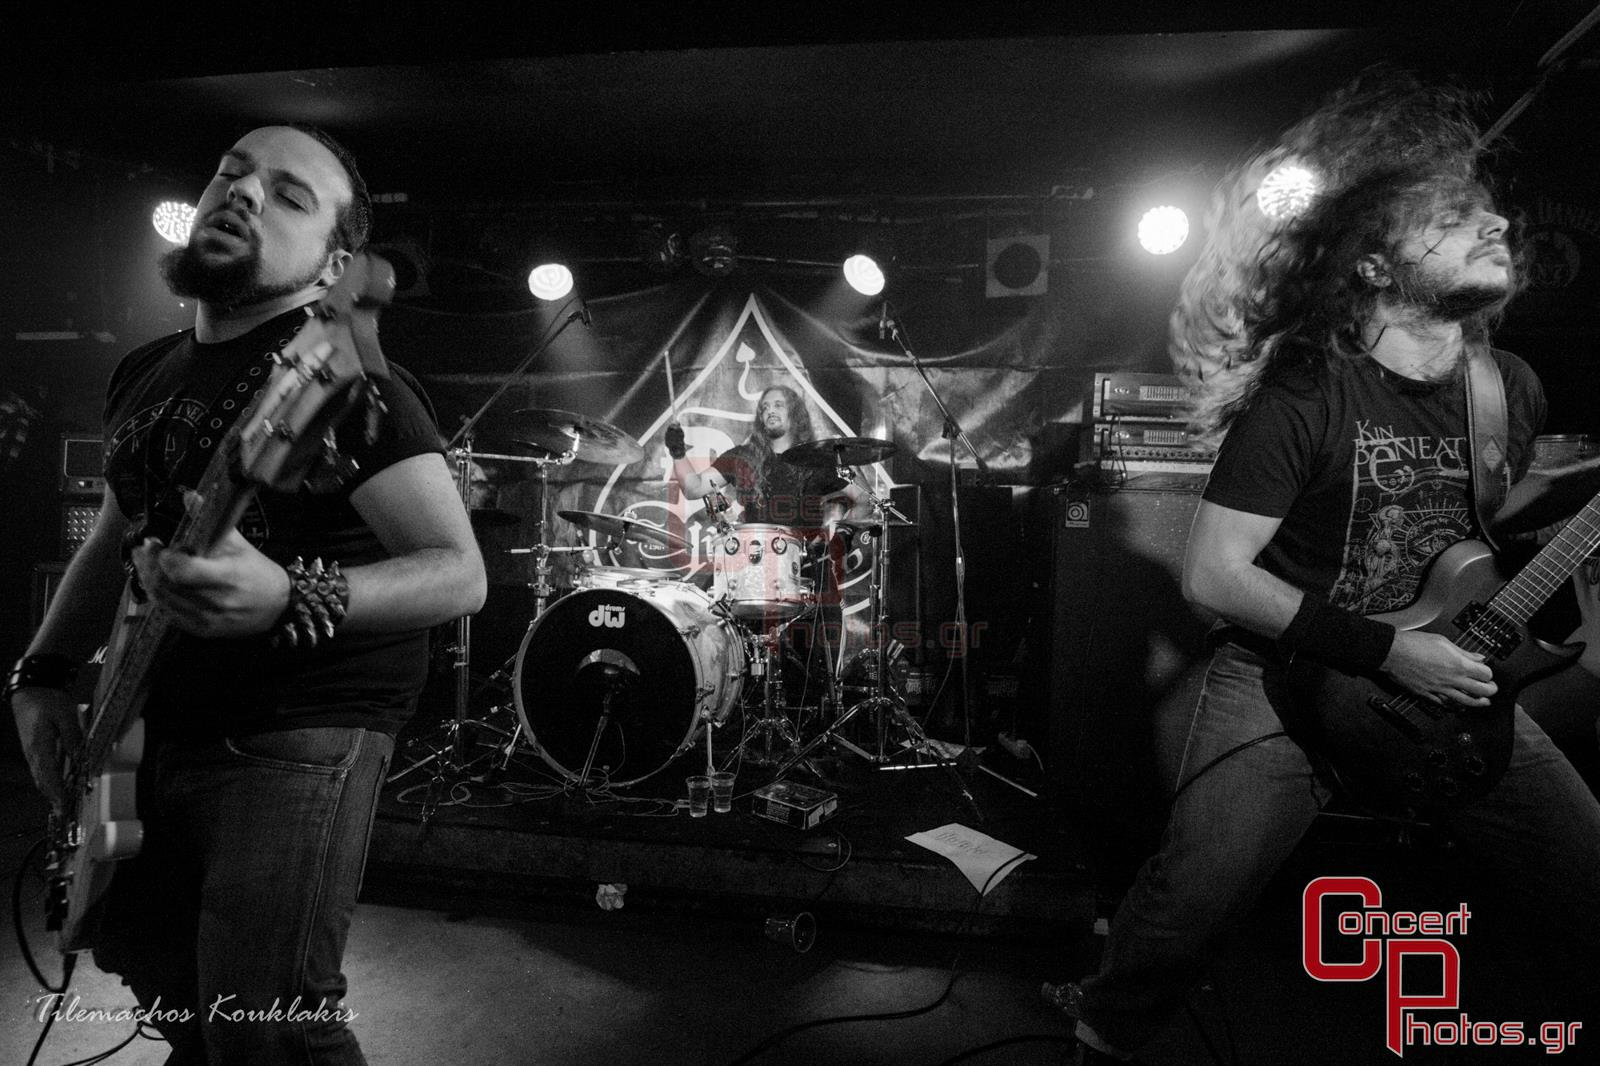 Nightstalker-Nightstalker AN Club photographer:  - concertphotos_-25